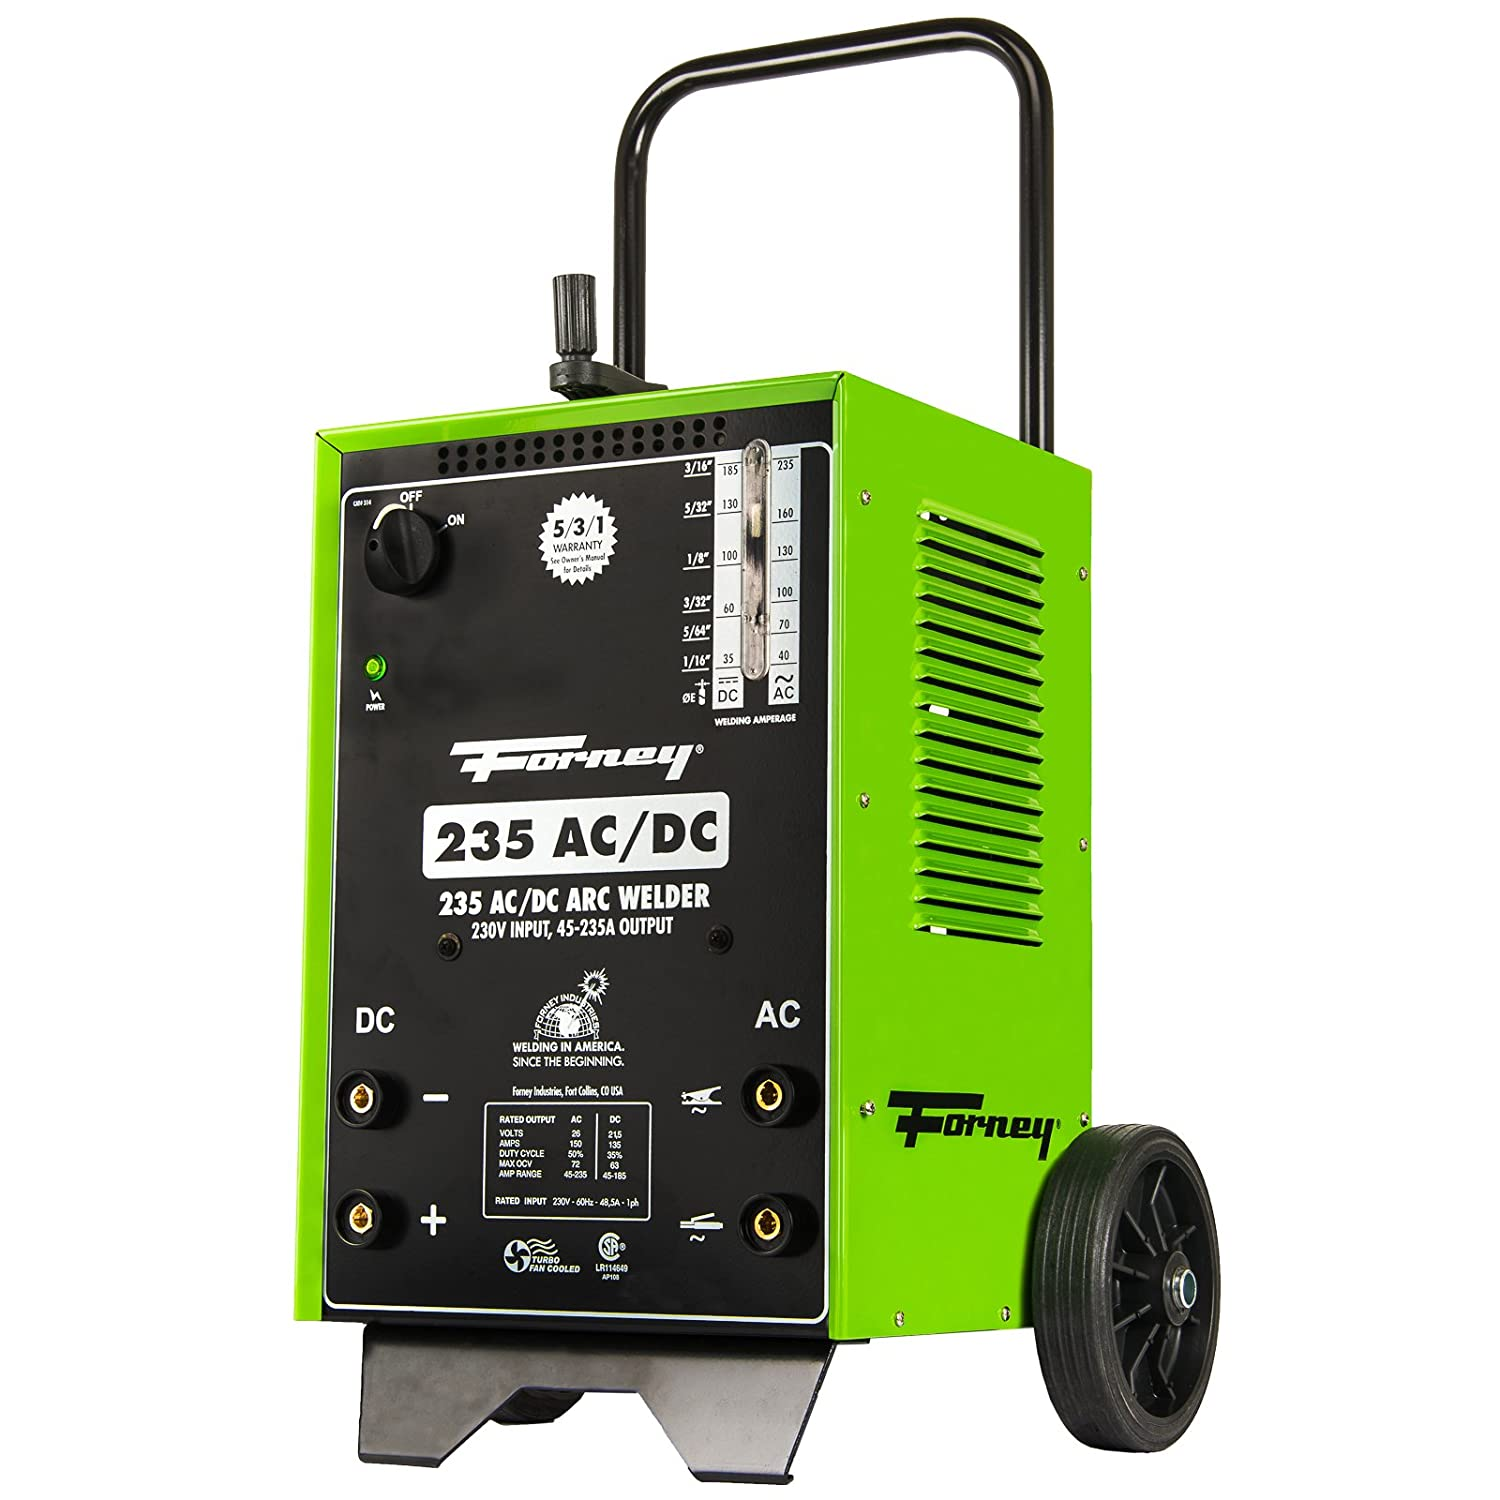 Best 110v Stick Welder Review: 5 Top-Rated in August 2019!